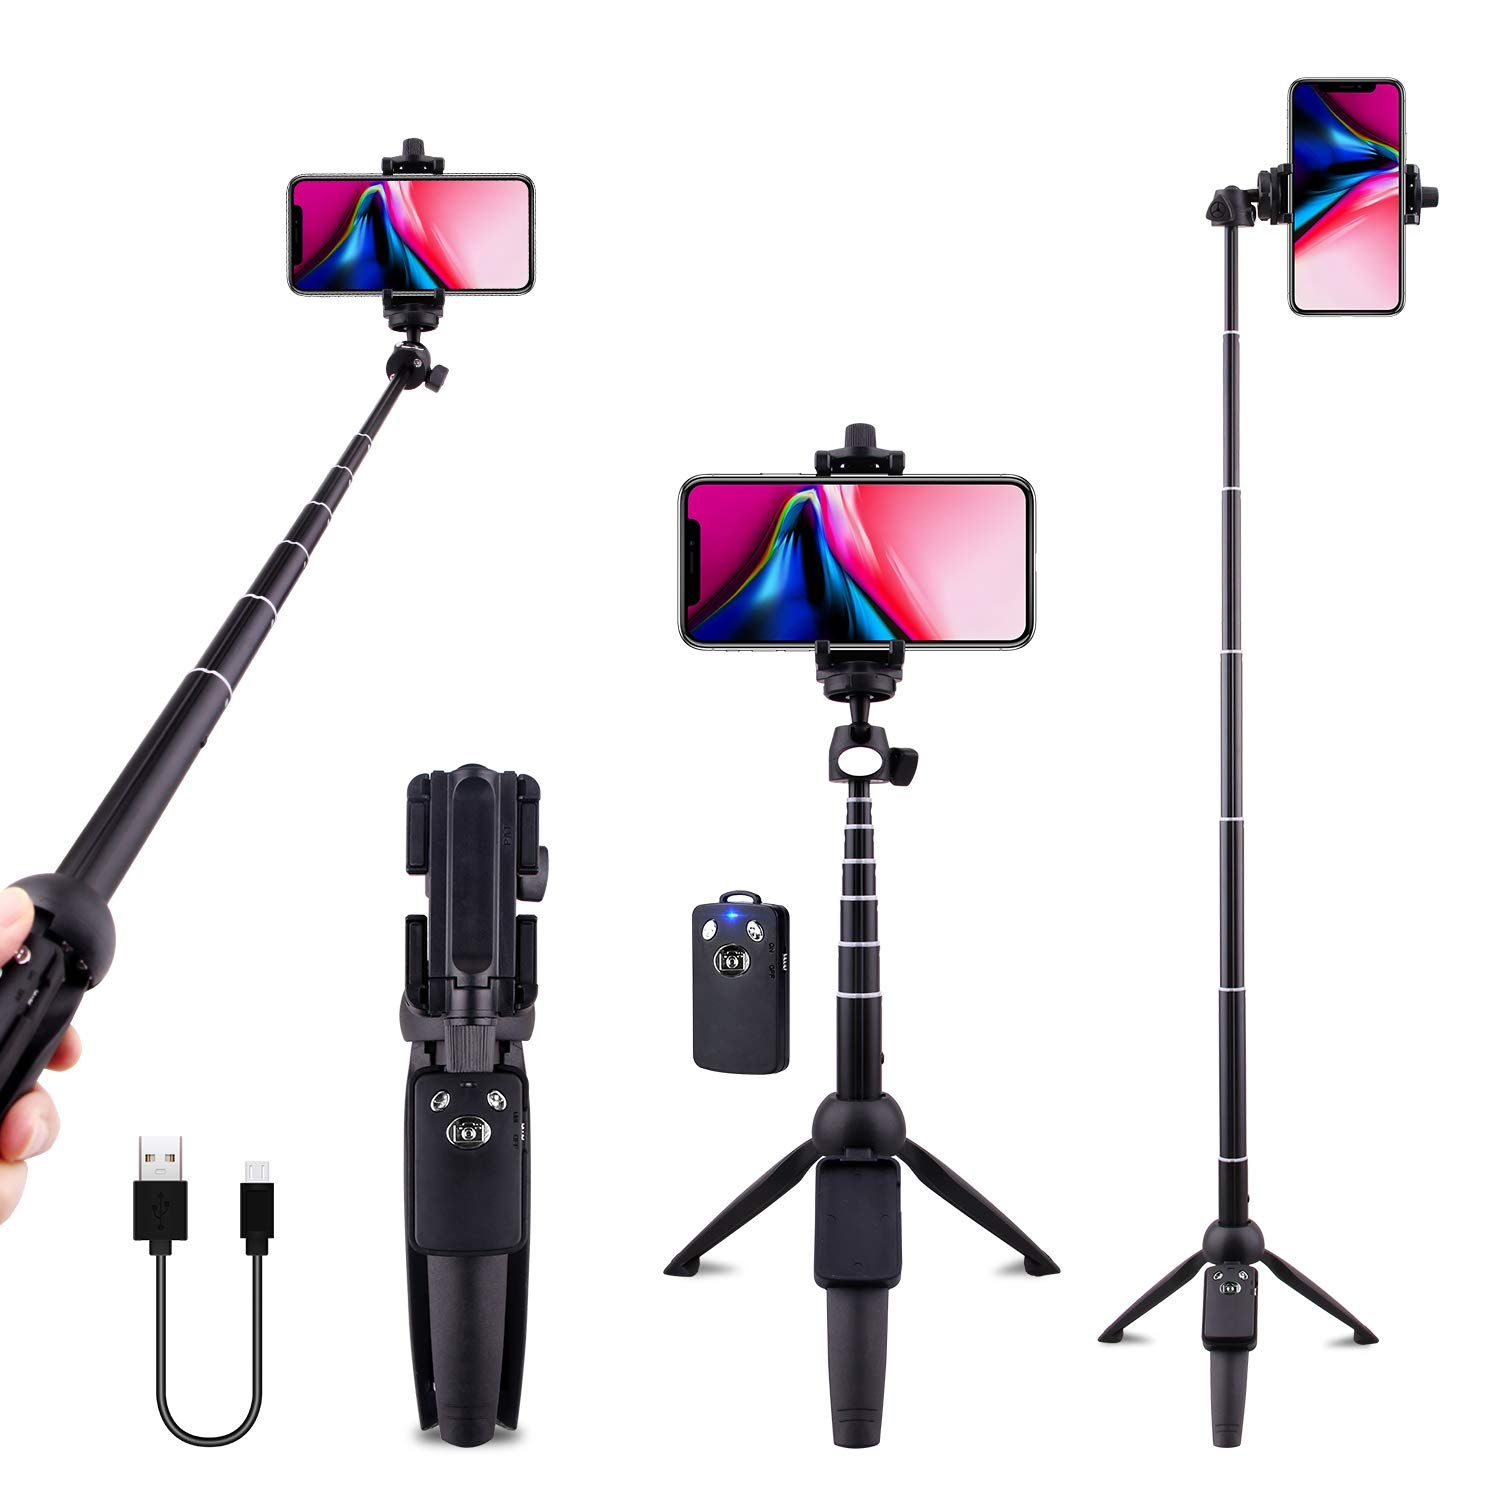 Selfie Stick Tripod Bluetooth, LATZZ 40 Inch Extendable Phone Tripod Monopod with Wireless Remote Shutter and Tripod Stand Compatible iPhone X/8/8P/7/7P/6/6P/Galaxy Note 8/S9+/S9, More by LATZ·Z